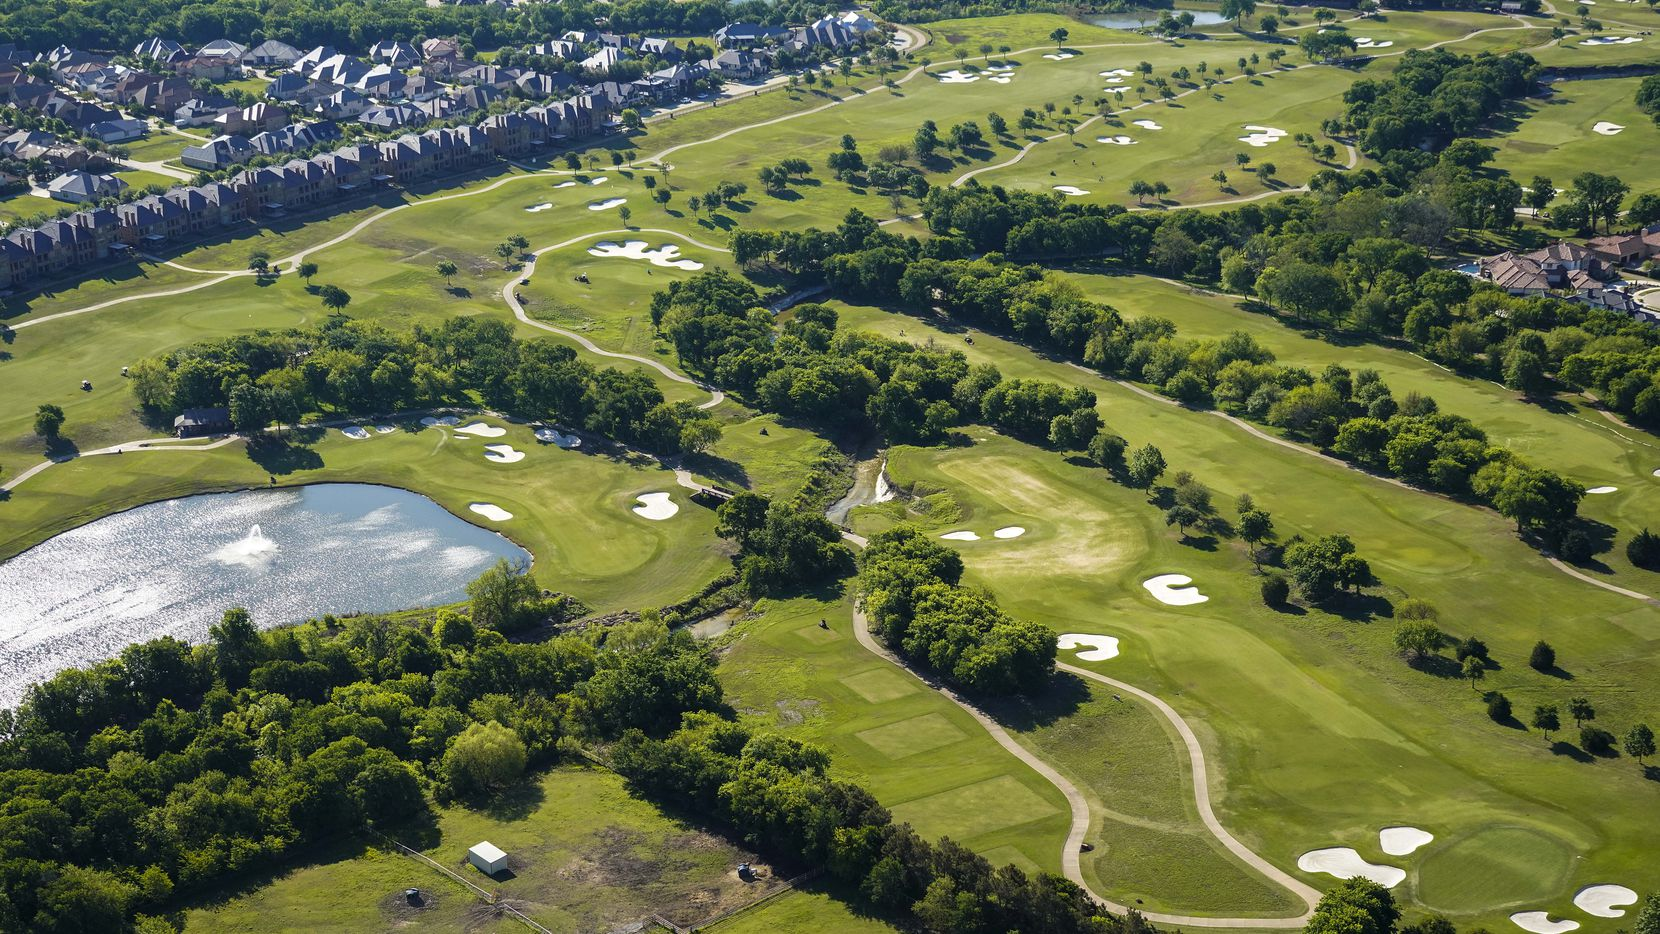 Aerial view of TPC Craig Ranch golf course on Thursday, April 16, 2020, in McKinney, Texas. (Smiley N. Pool/The Dallas Morning News)